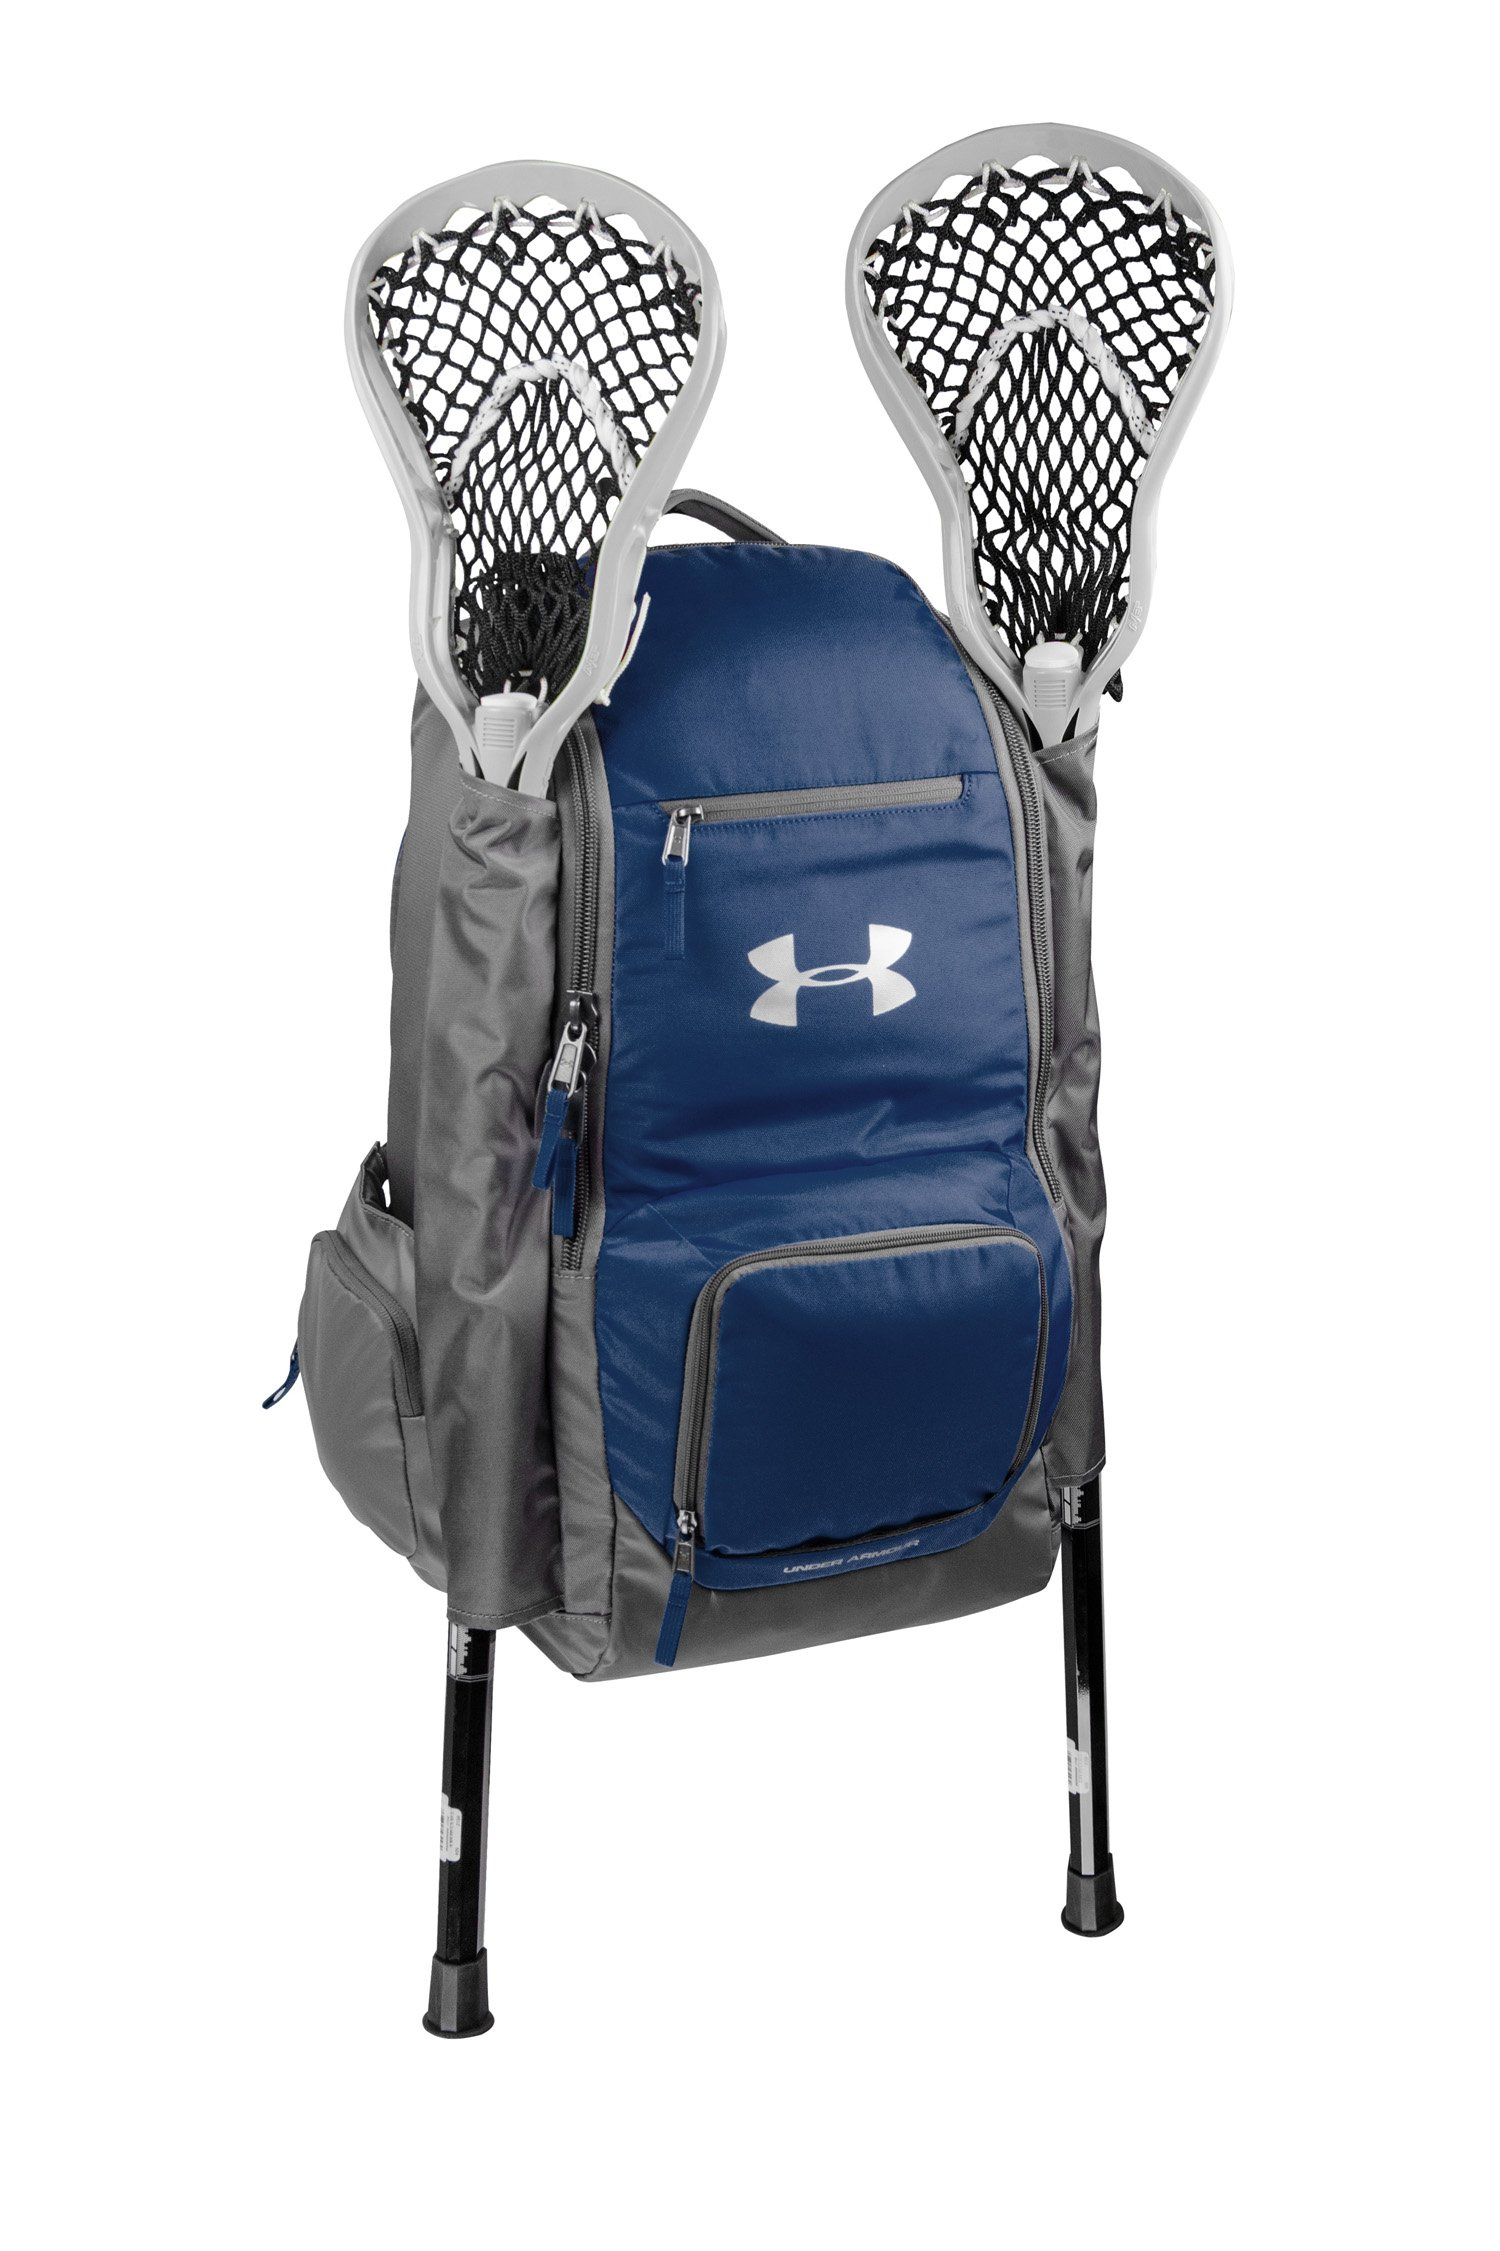 Under Armour UA Unisex Line Drive Roller Bag Baseball Navy UASB-LDRB2 (Navy)